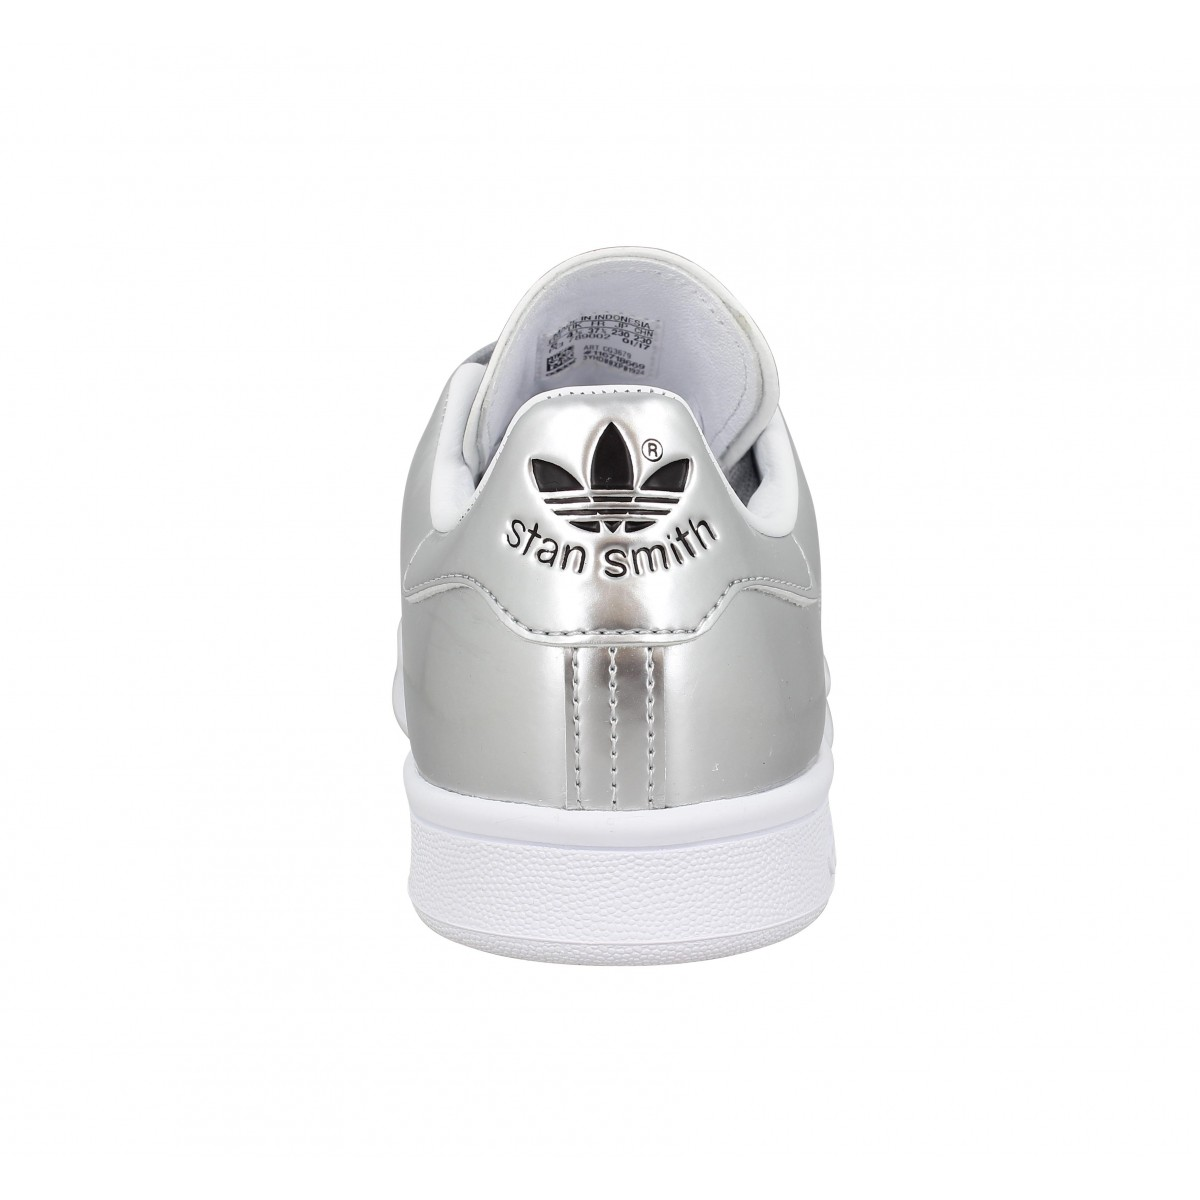 adidas stan smith metal femme argent femme fanny chaussures. Black Bedroom Furniture Sets. Home Design Ideas